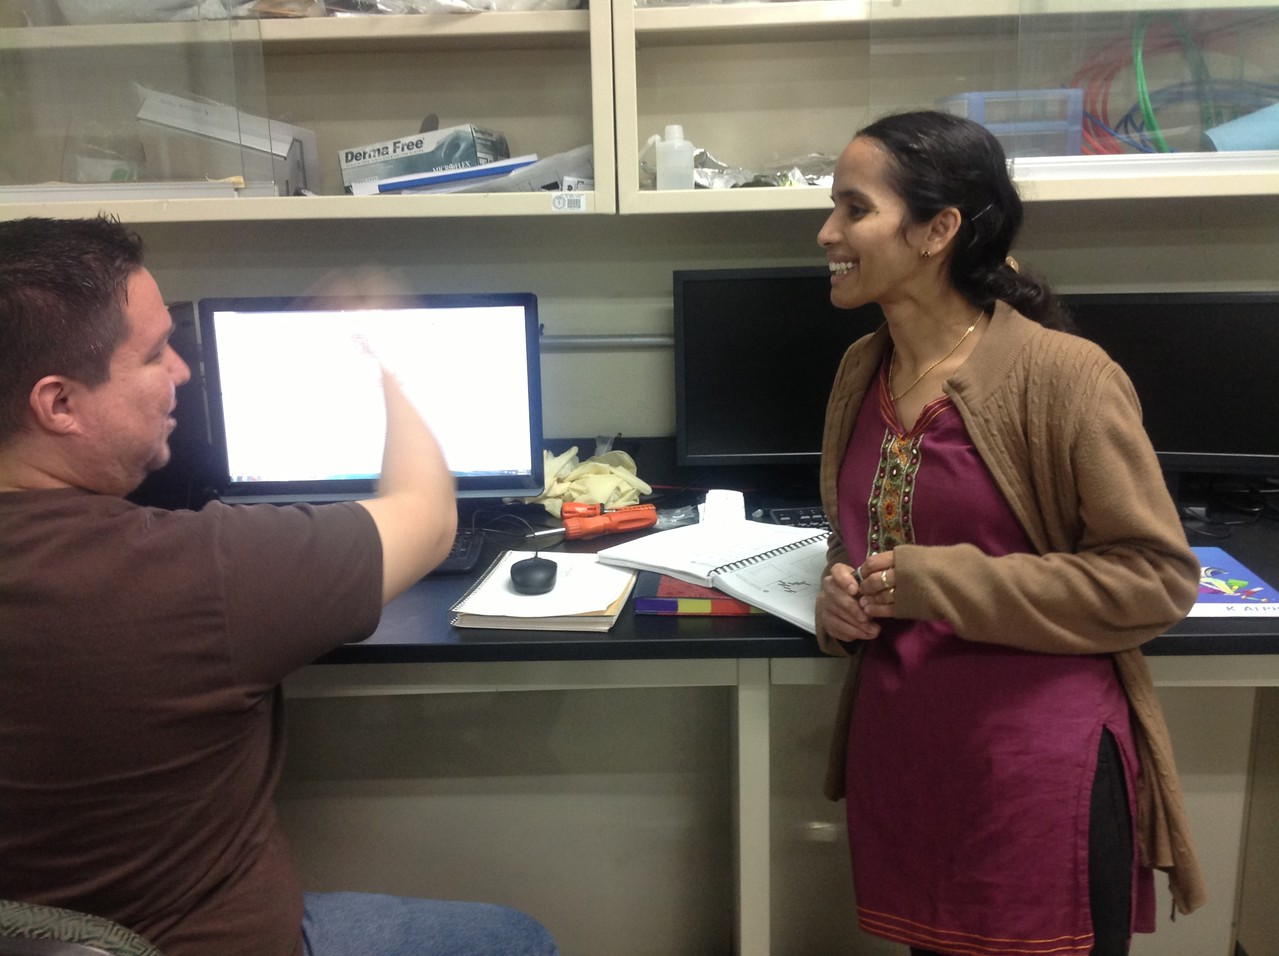 Prof. B. Krishnan in discussion with her student. Laboratory FIME UANL